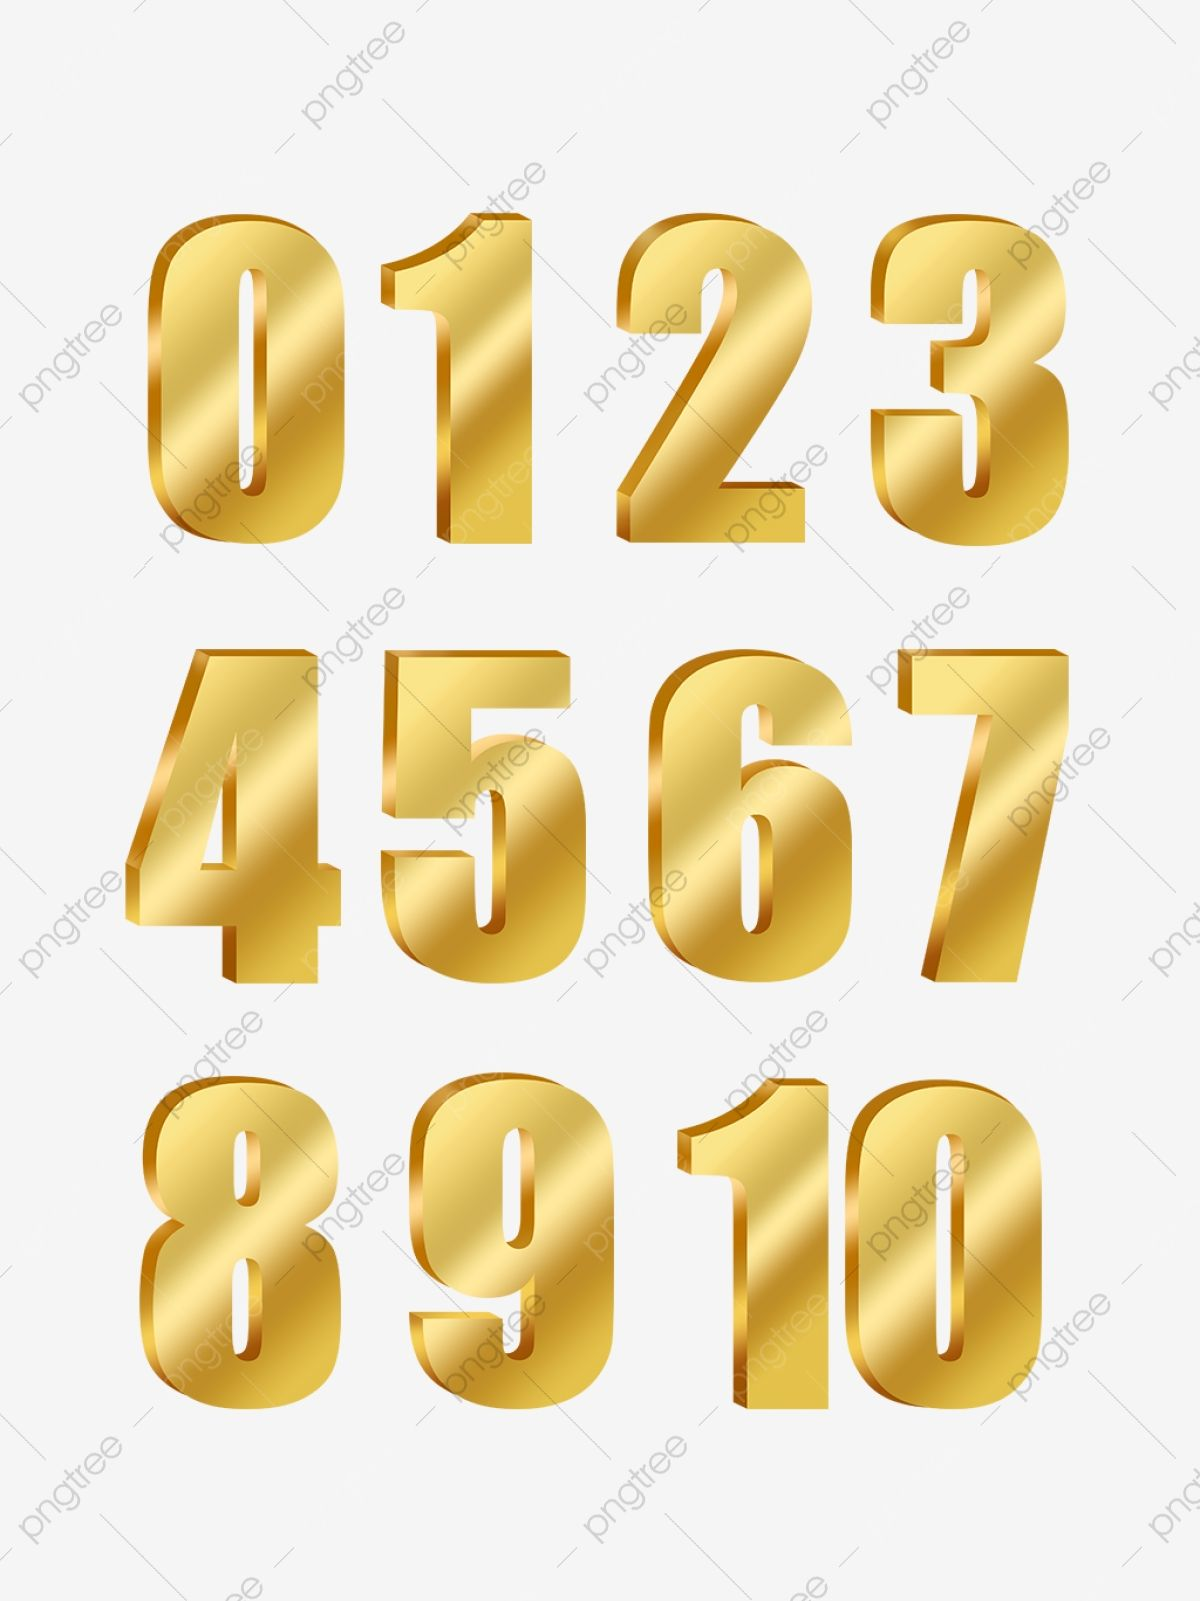 Golden Number Png Transparent Layer Material Golden Number 8 Golden Number 1 Golden Number 2 Png Transparent Clipart Image And Psd File For Free Download Golden Number Photo Cake Topper Numbers Font